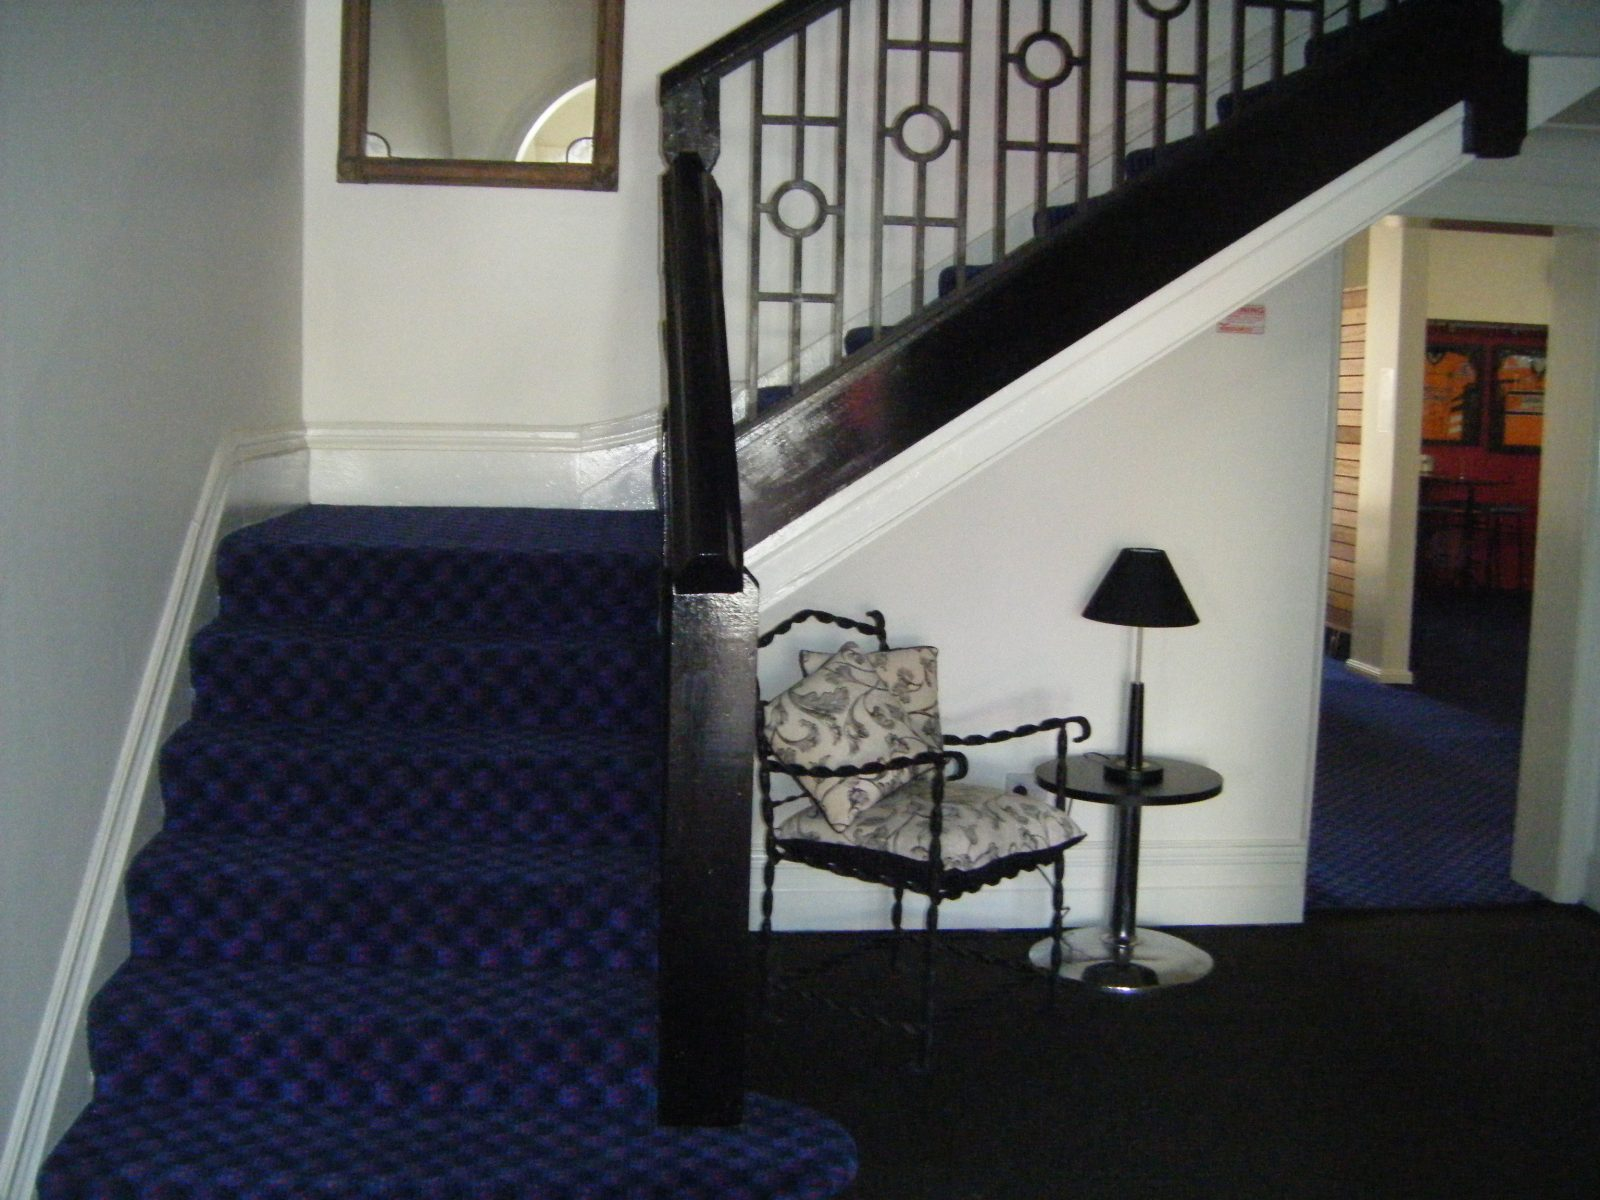 Hotel entry staircase